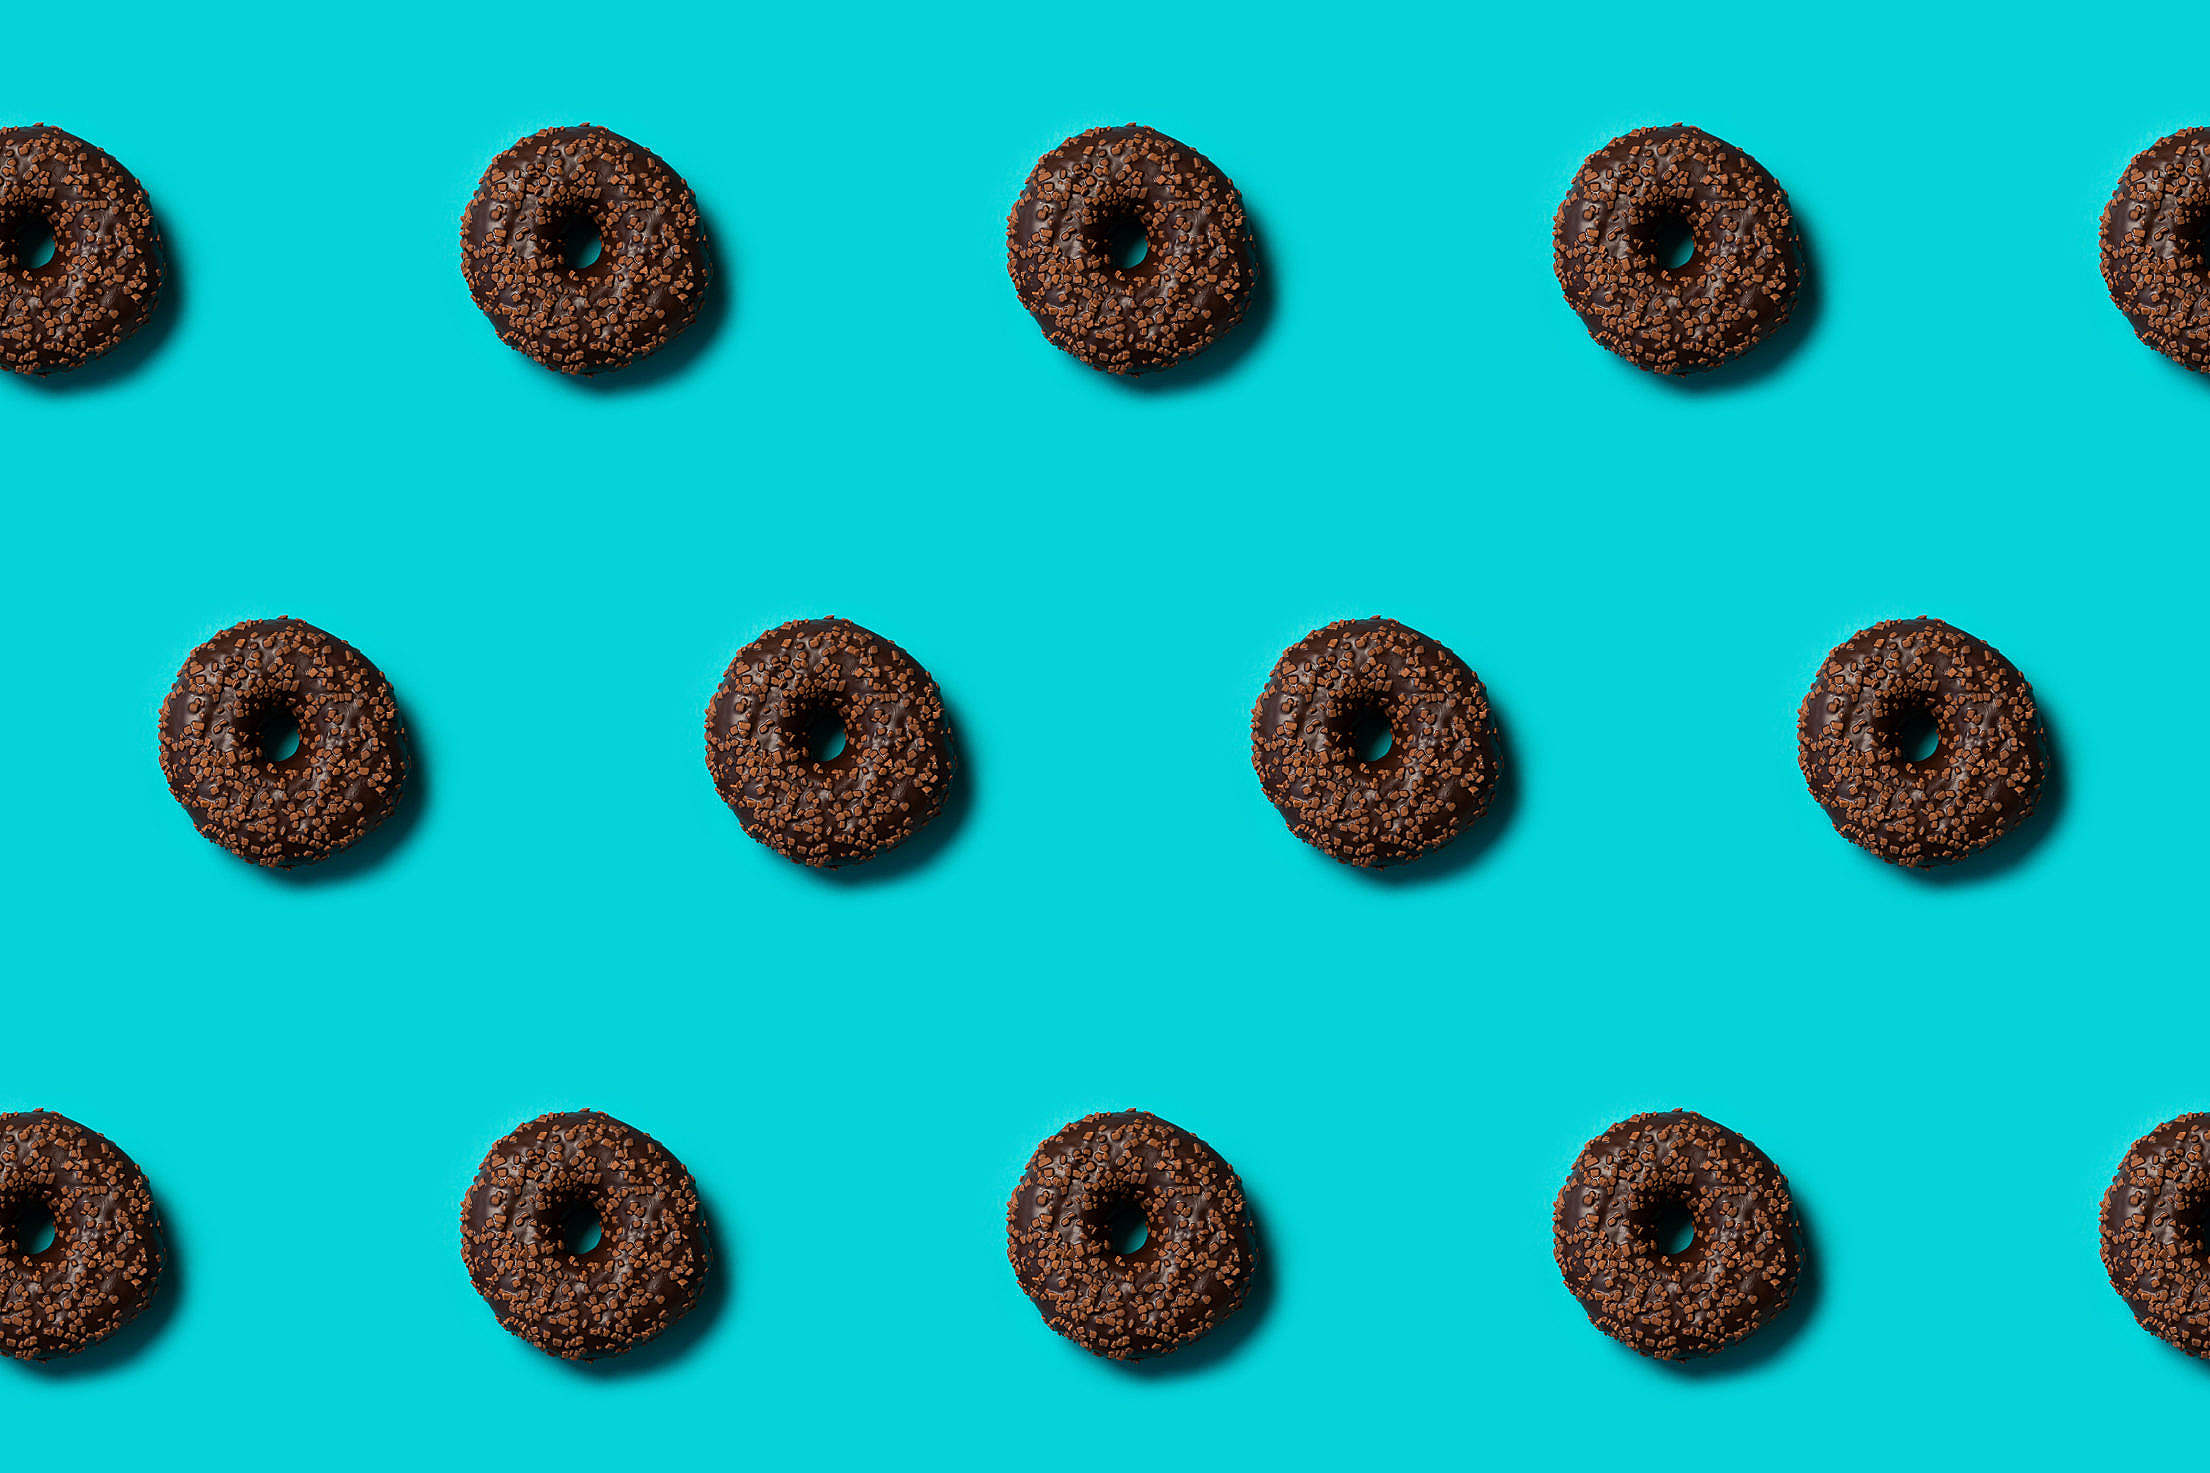 Chocolate Donuts Free Stock Photo